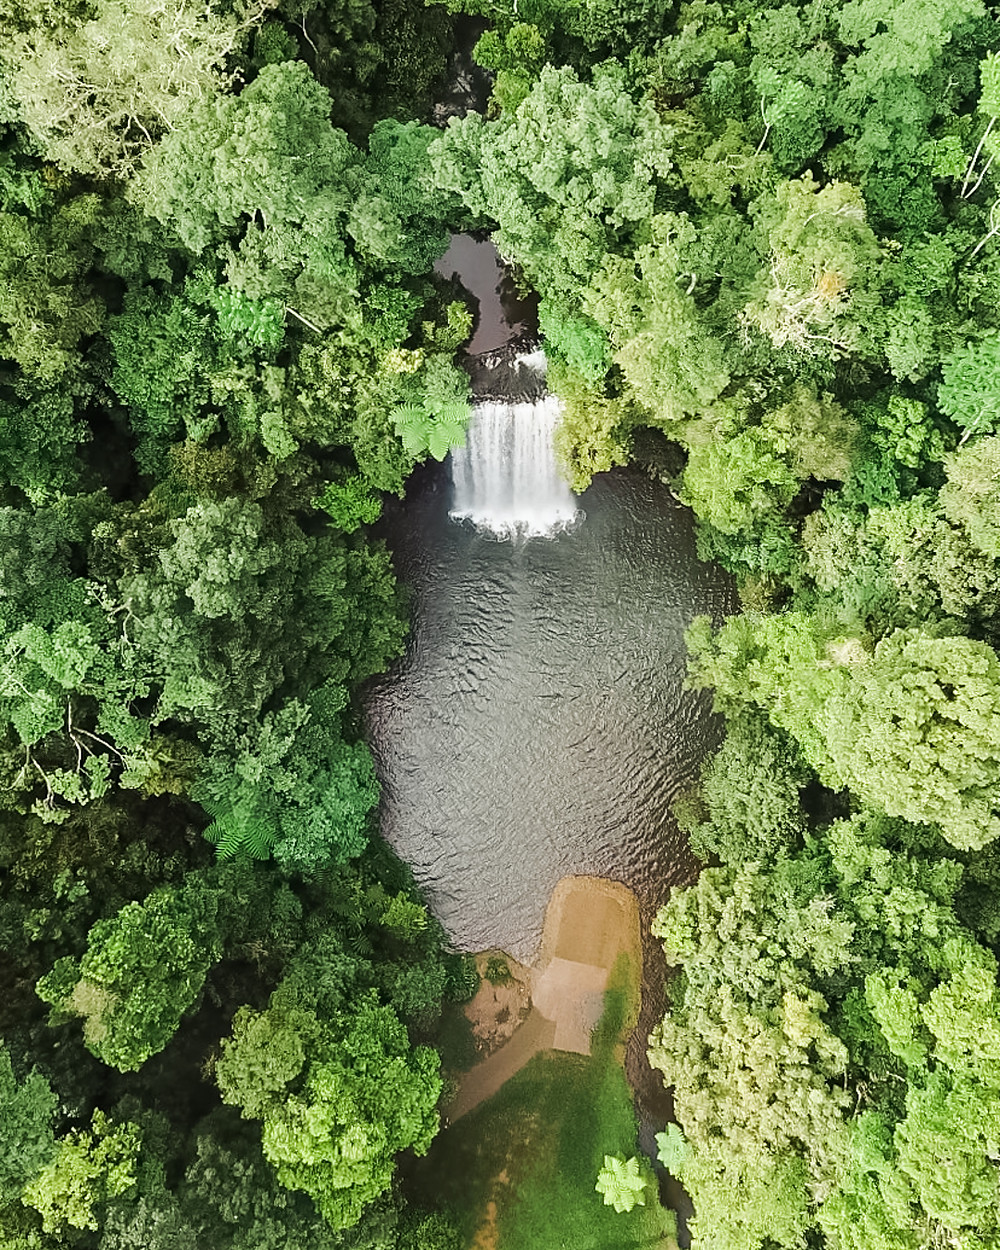 Millaa Millaa Falls on the Atherton Tableland near Cairns in Tropical North Queensland